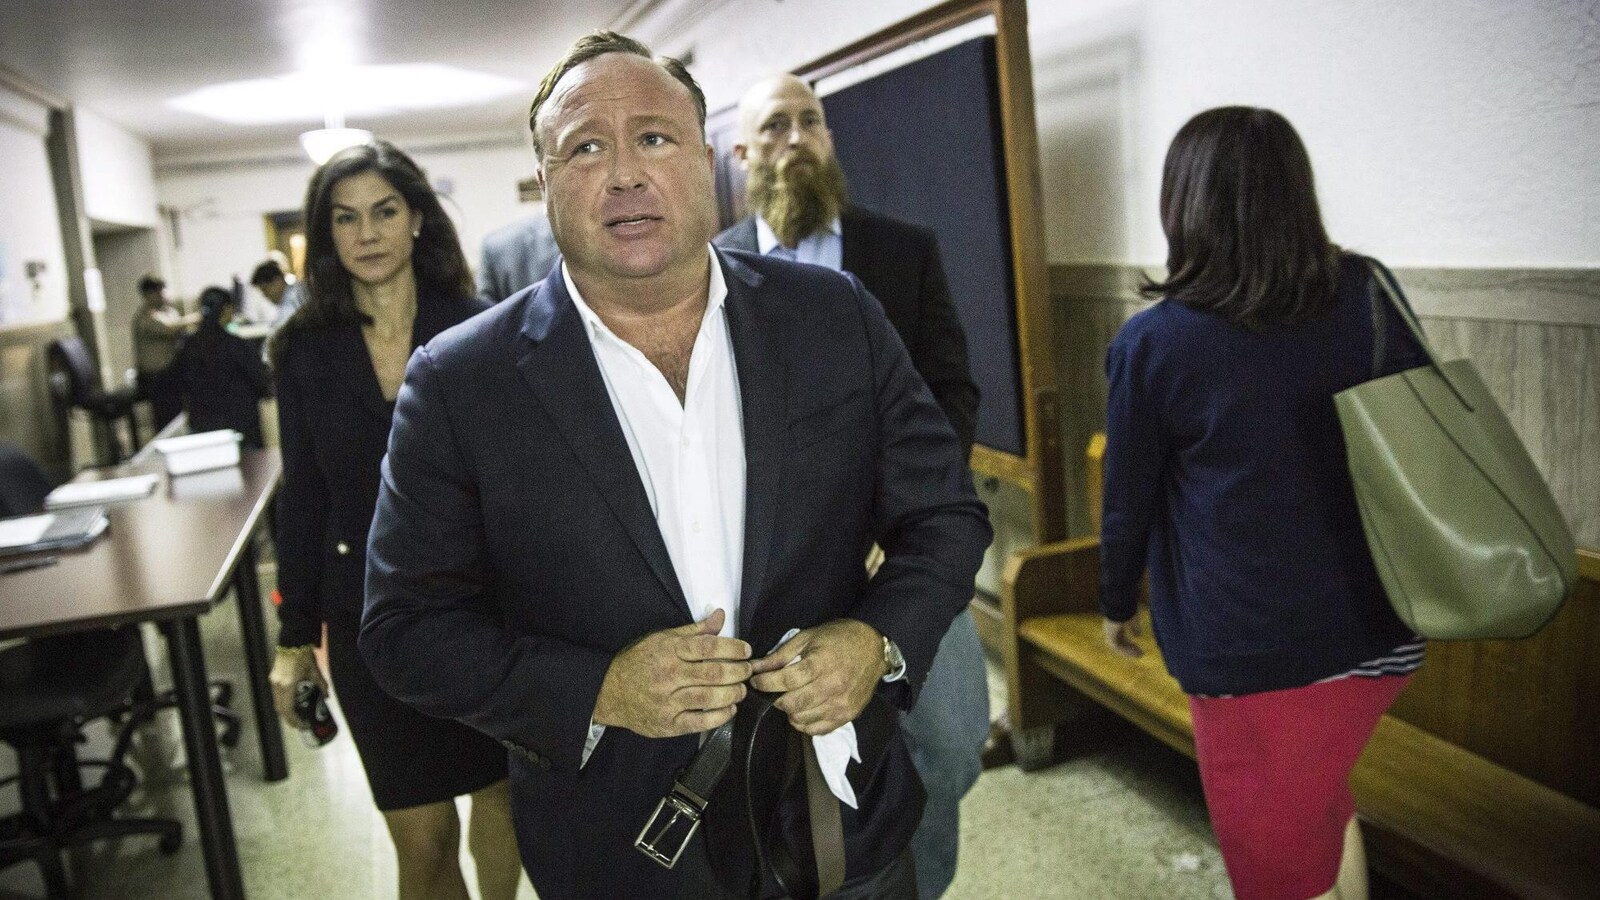 Alex Jones marche dans un corridor.